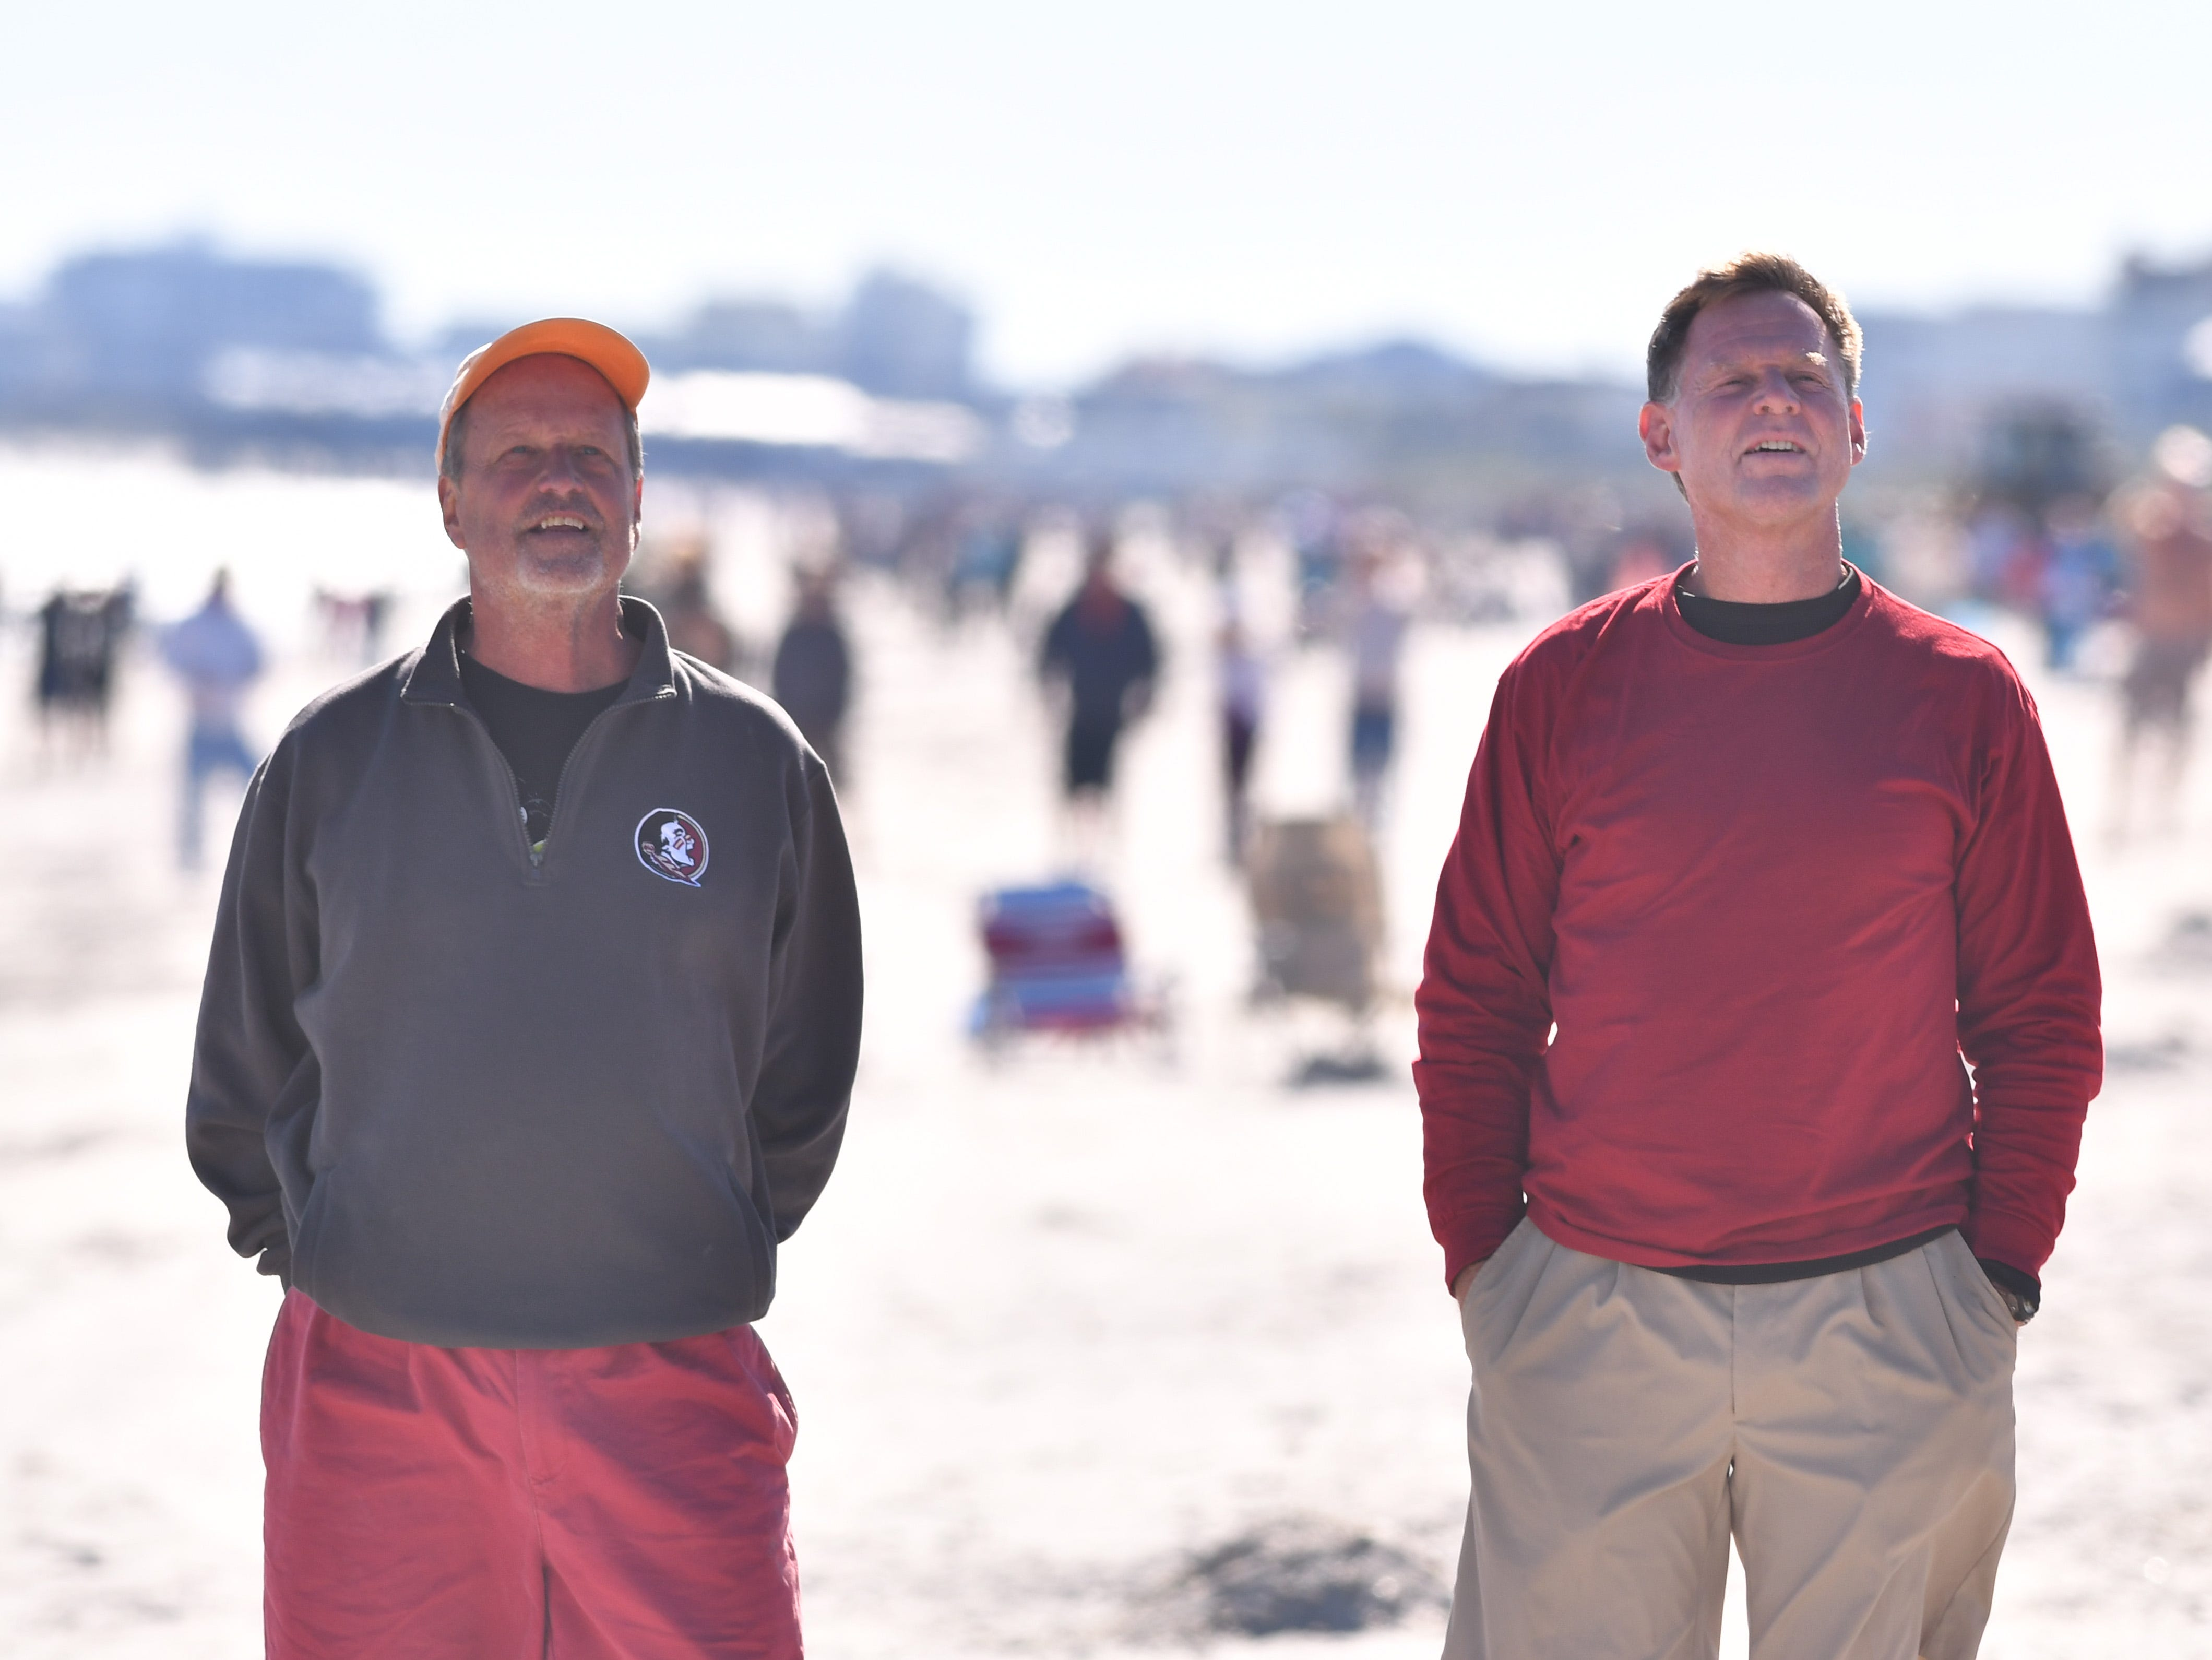 Kevin Scanlon and Dave Langenbach stand on the beach in Cape Canaveral and watch the launch of the SpaceX Falcon 9 from Cape Canaveral Air Force Station Launch Complex 40 Wednesday afternoon at 1:16 p.m. The Dragon spacecraft is carrying food, supplies and experiments to the International Space Station. The 156-foot-tall booster with landing legs deployed attempted to landed at Landing Zone 1 at Cape Canaveral Air Force Station roughly eight minutes after liftoff but landed in the ocean due to a hydraulics issue.